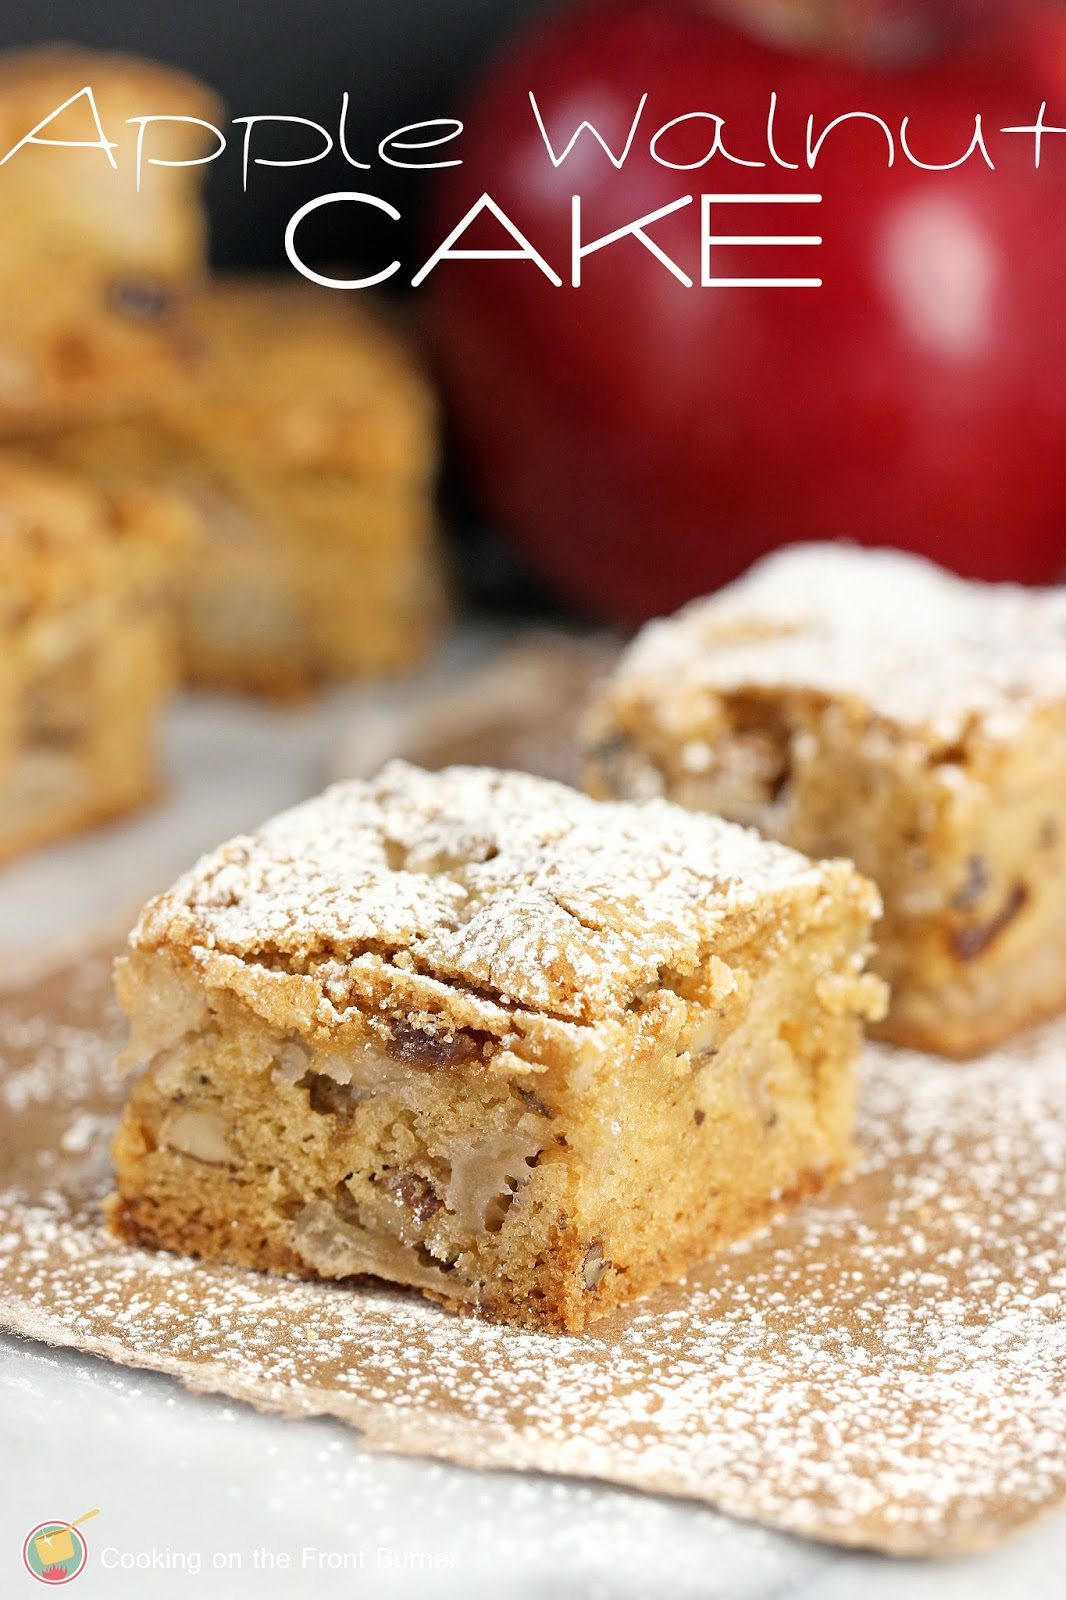 Apple Walnut Cake | Cooking on the Front Burner